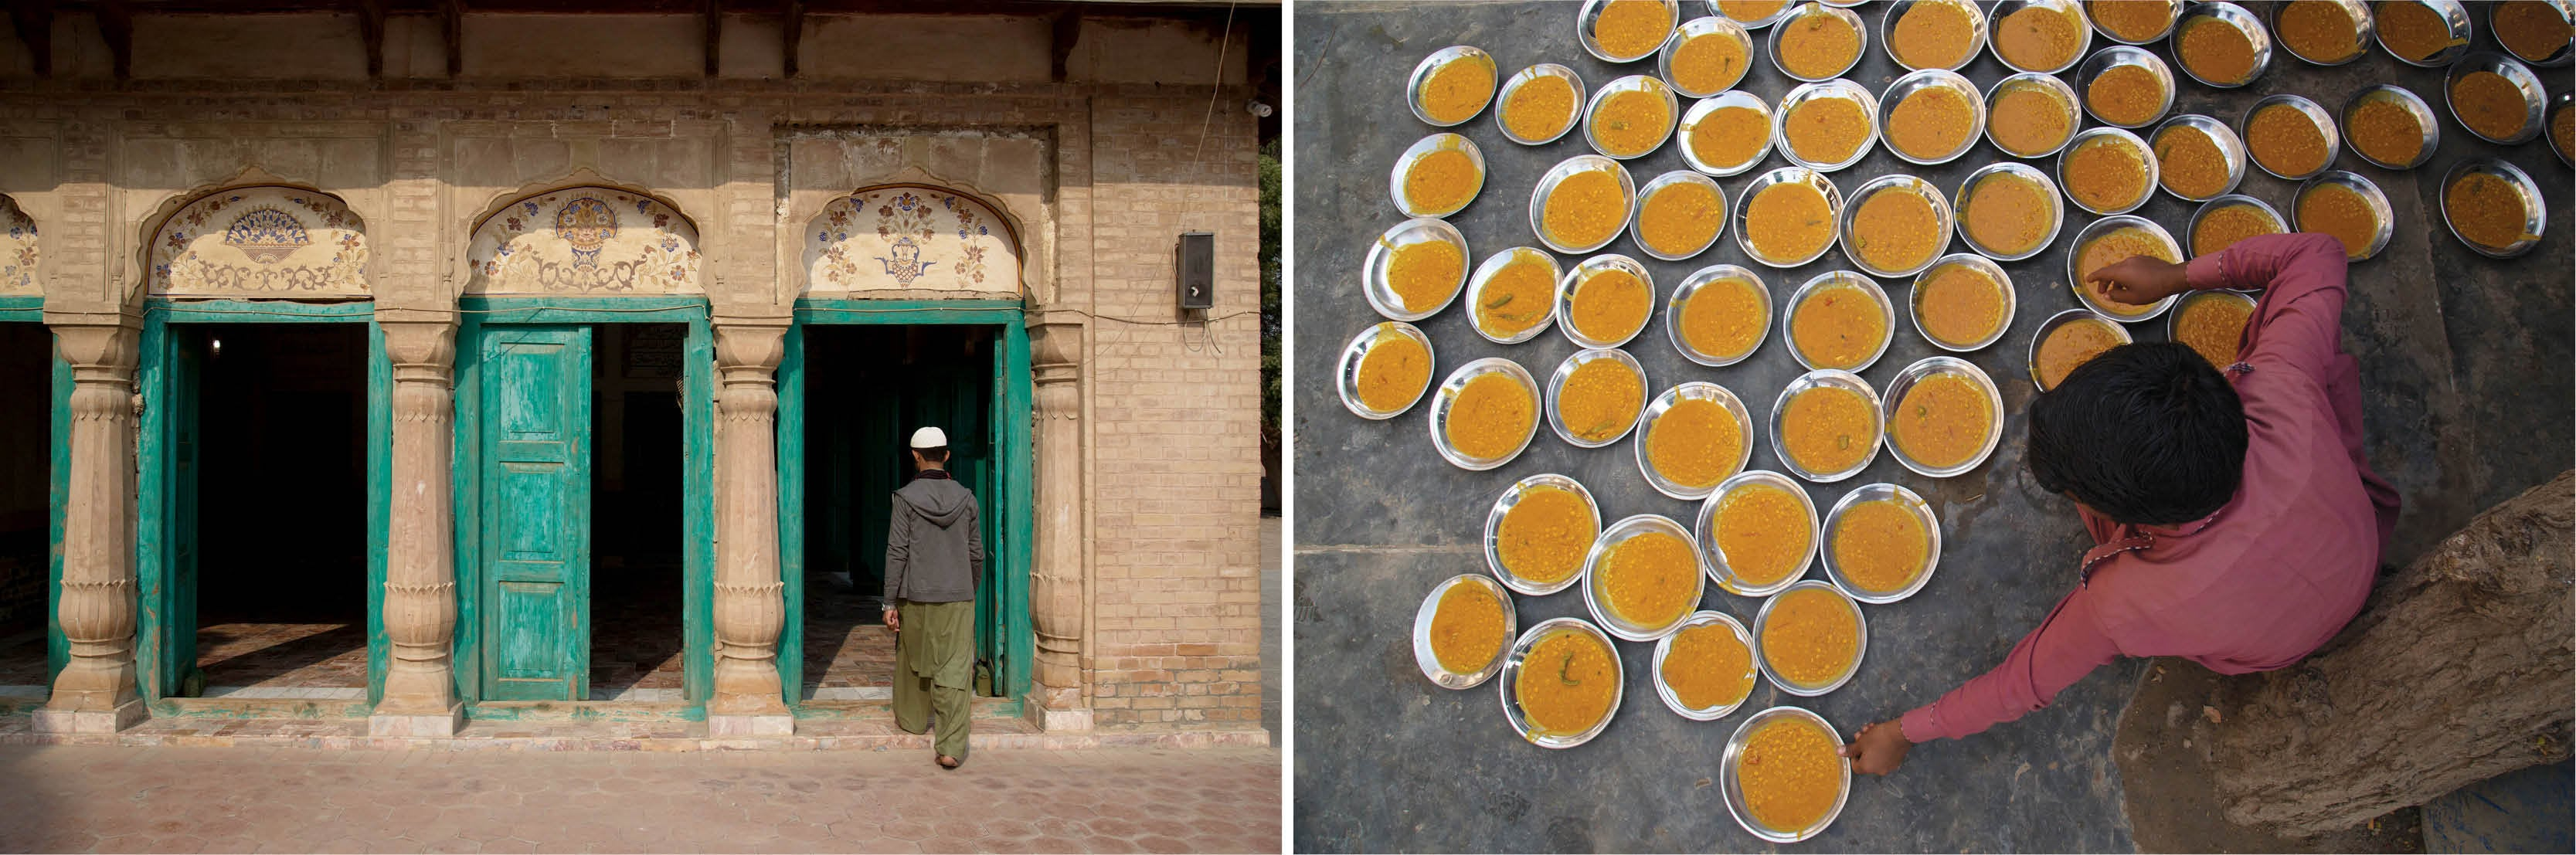 (Left) Entrance of the mosque next to the shrine of Khawaja Ghulam Farid in Kot Mithan; (Right) Langar, a community kitchen, serving free food to pilgrims at the shrine of Khawaja Ghulam